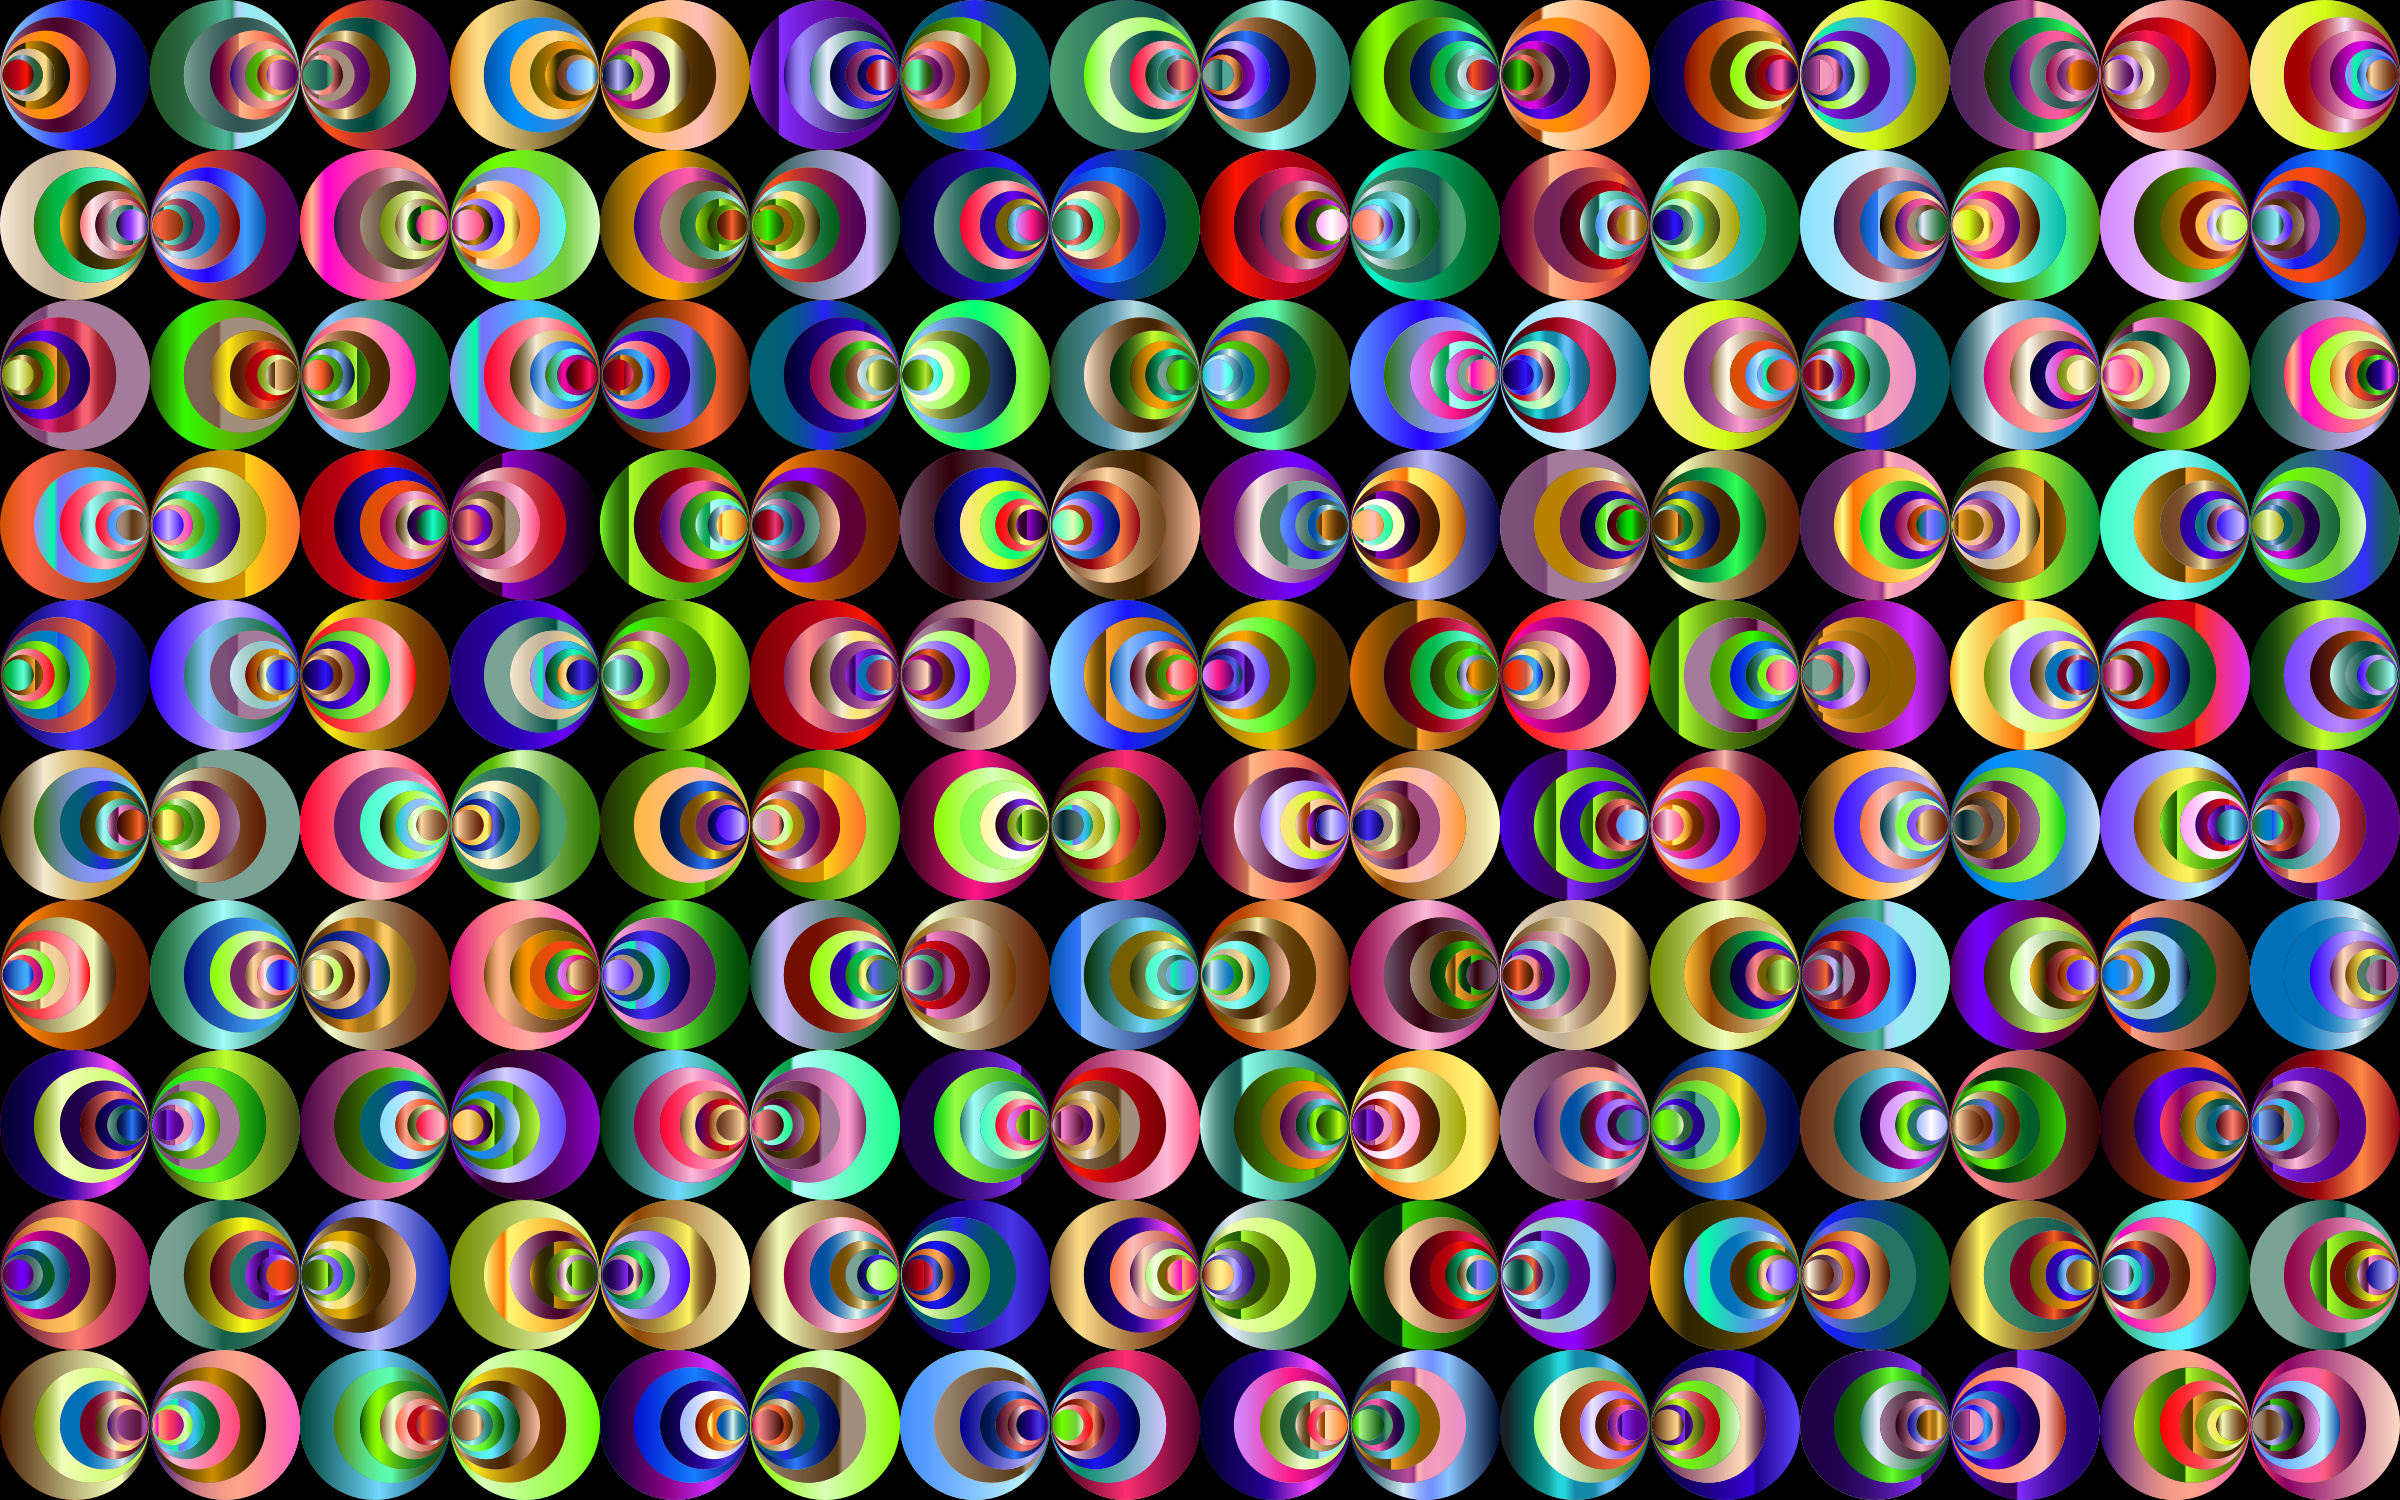 Retro Circles Background 5 by GDJ